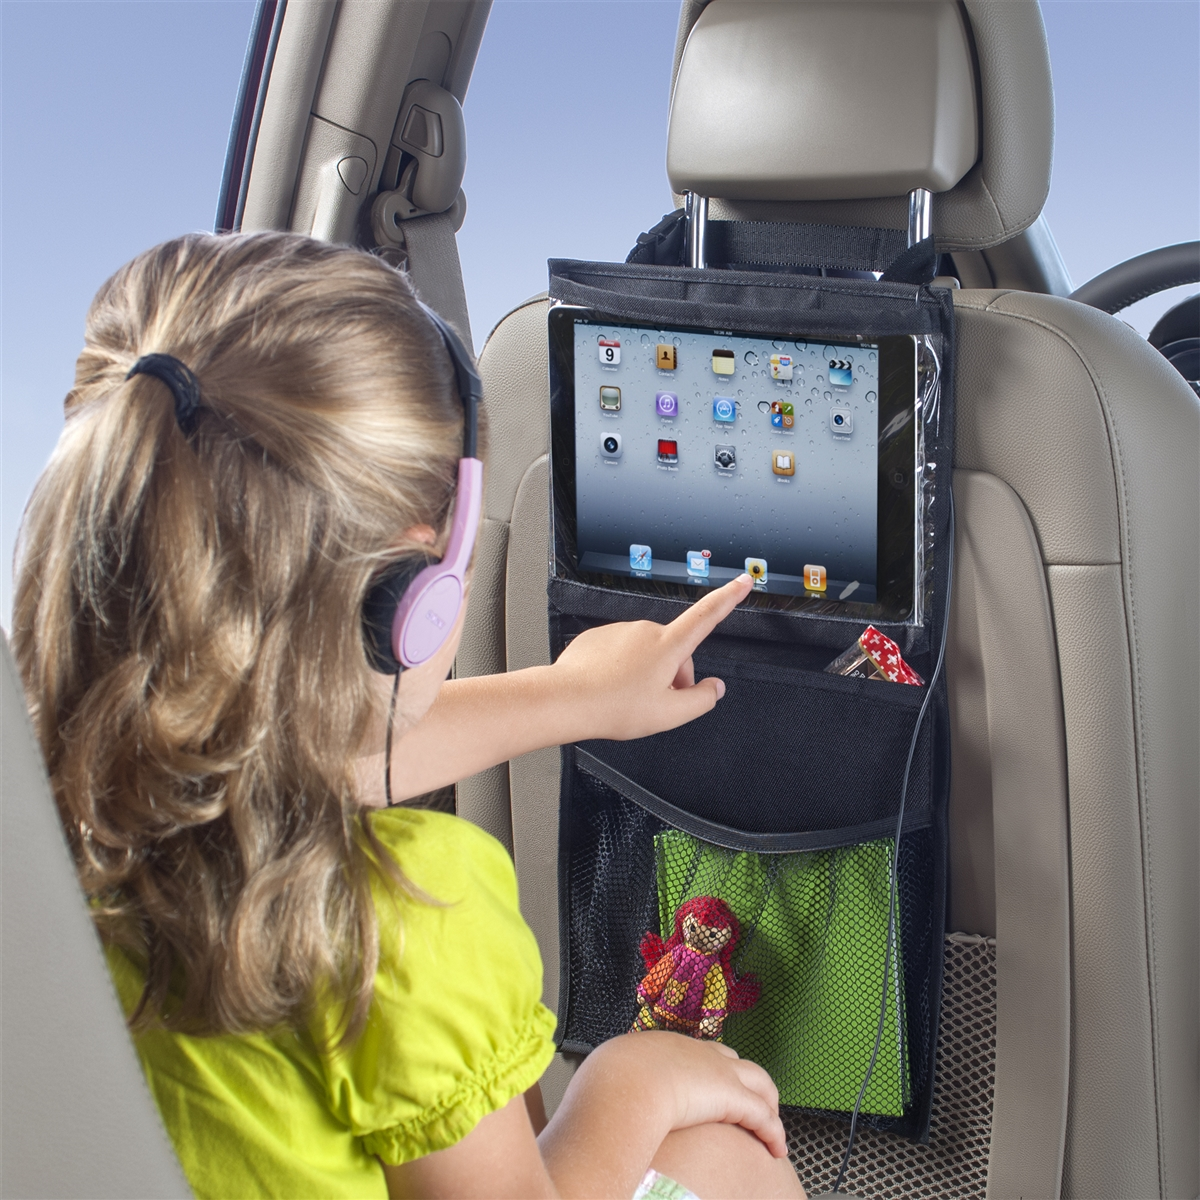 iPad and Tablet Holder Personal Insulated Storage Bag for Adults /& Kids lebogner Car Cooler Organizer Vehicle Front Or Back Seat Travel Bag Headrest Hanging Organizer for The Driver Or Passenger